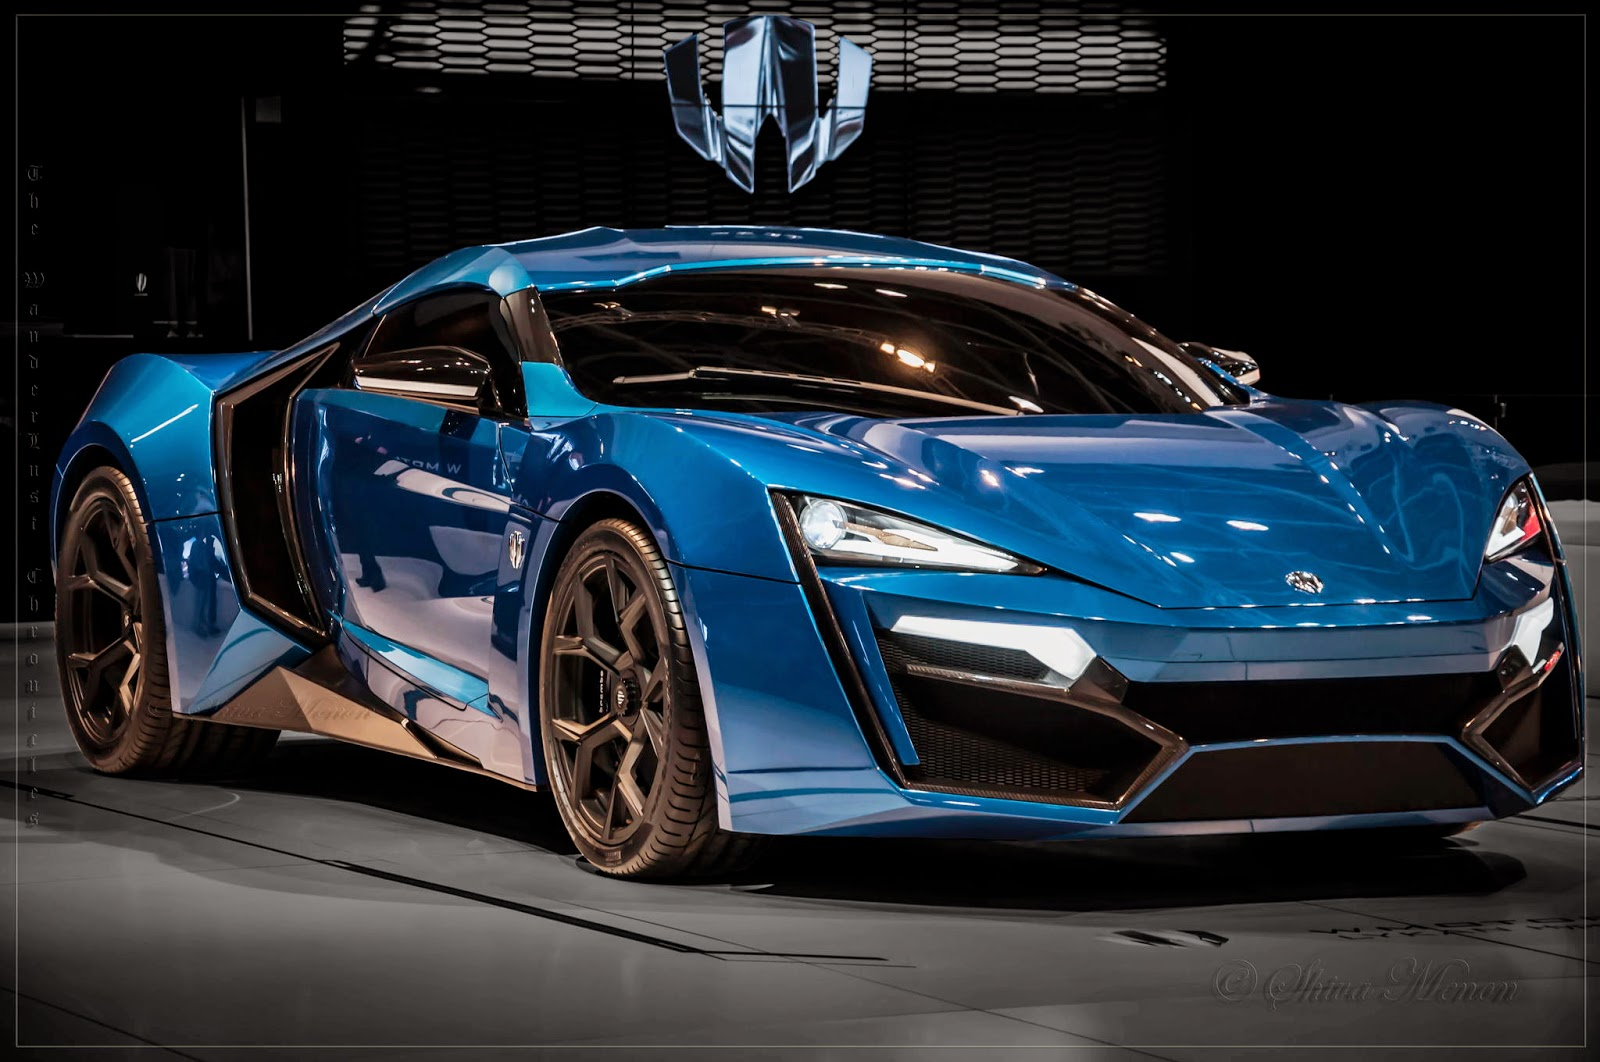 Ultimate Supercar How Fancy Arabic? Lykan Hypersport